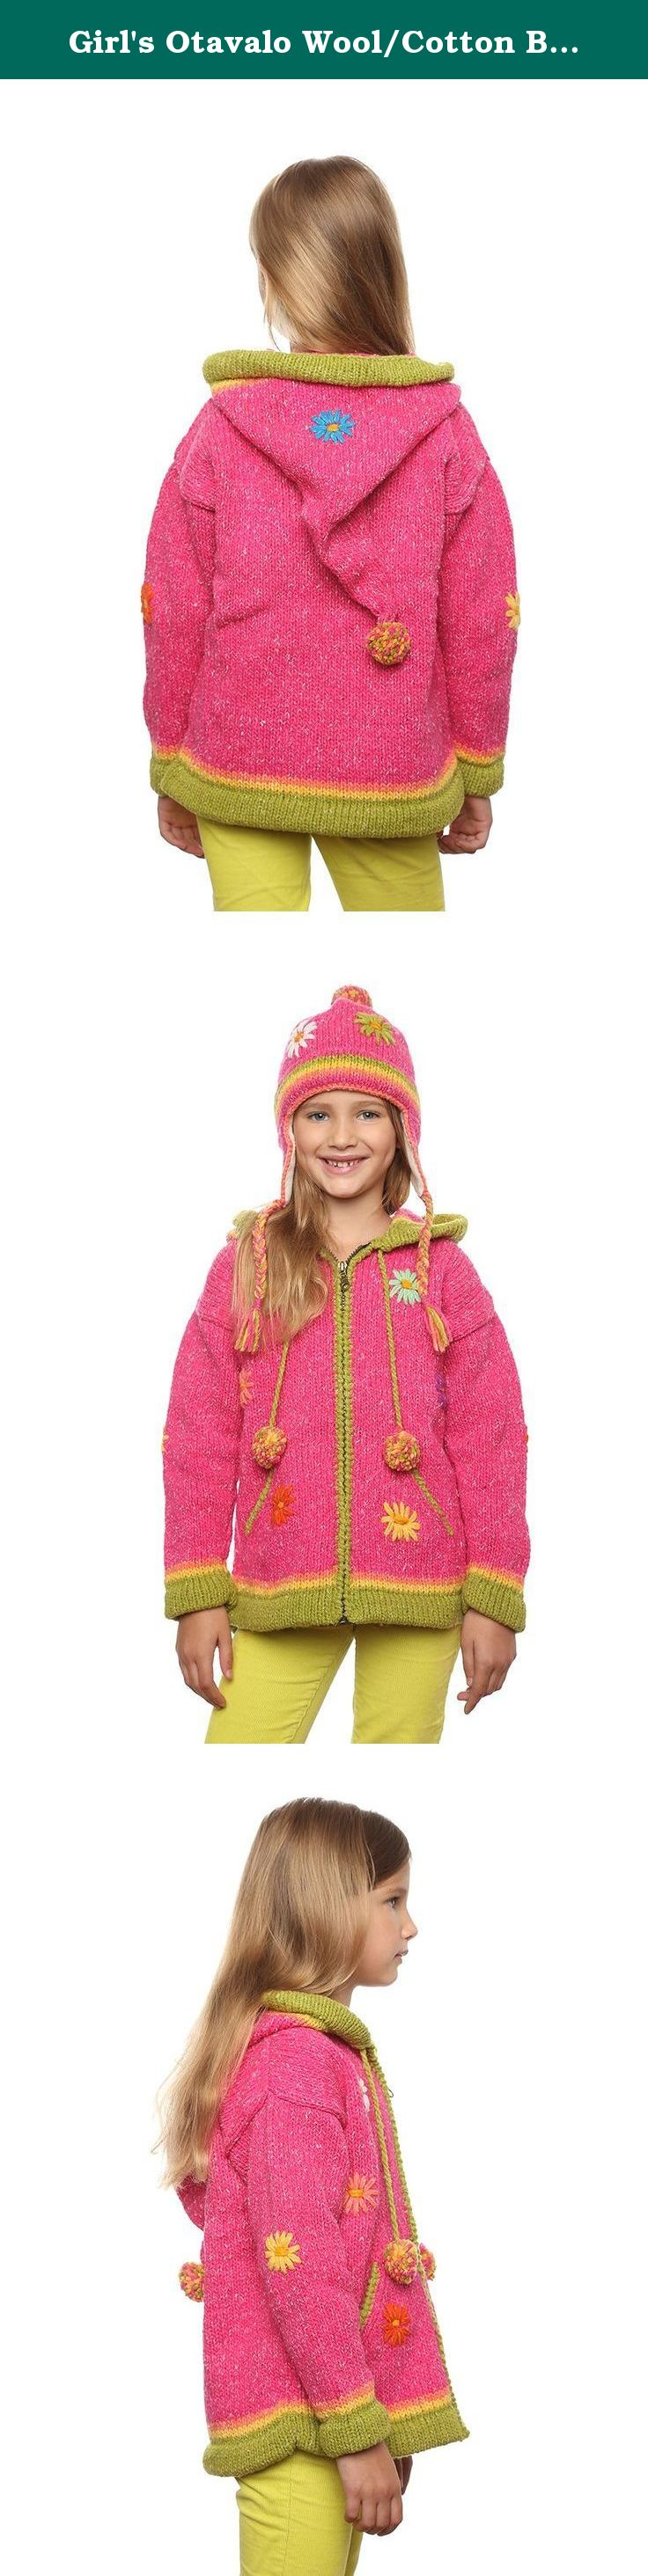 "Girl's Otavalo Wool/Cotton Blend Hand-Knit ""Pink Flower"" Hooded Cardigan Sweater 2-3 Year Old. Washing Instructions: •Machine Wash in cold water, delicate cycle. Lay flat to dry. Do not put your sweater in the dryer. Turn embroidered sweaters inside out before washing. You can also dry clean your sweater. The Indigenous Markets of Otavalo Otavalo, Ecuador is the place where we started in business more than 25 years ago, and my guess is that with people this creative and dynamic, we'll be..."